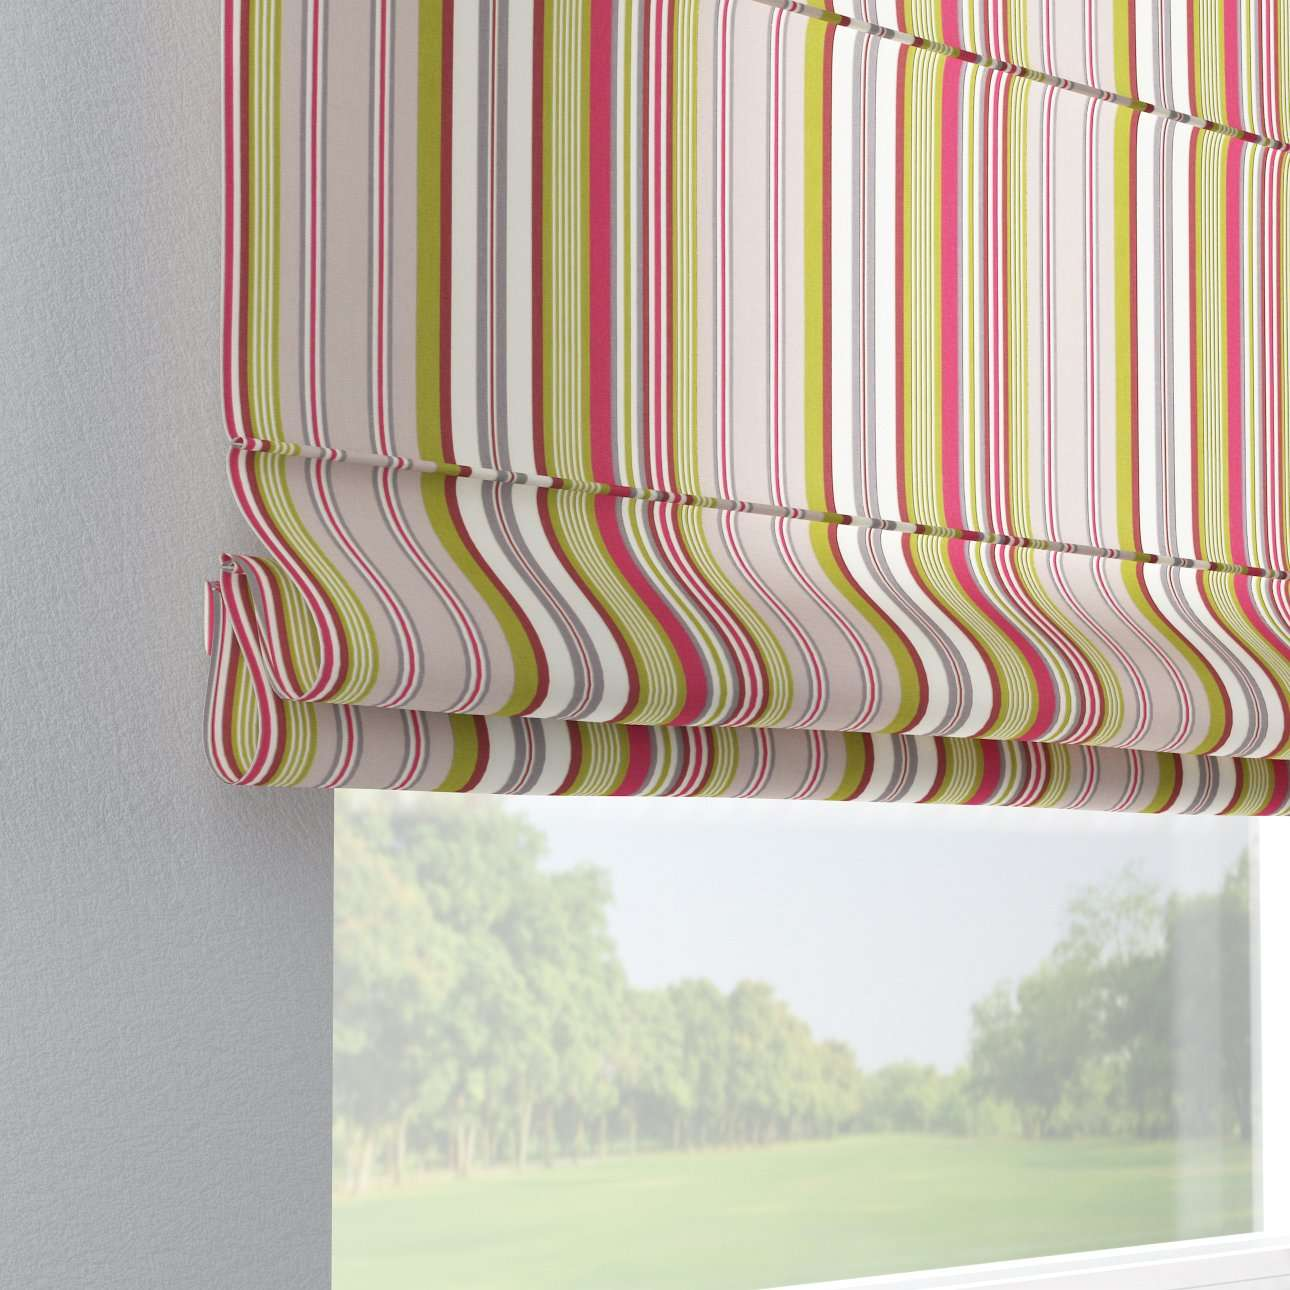 Capri roman blind 80 x 170 cm (31.5 x 67 inch) in collection Flowers, fabric: 311-16